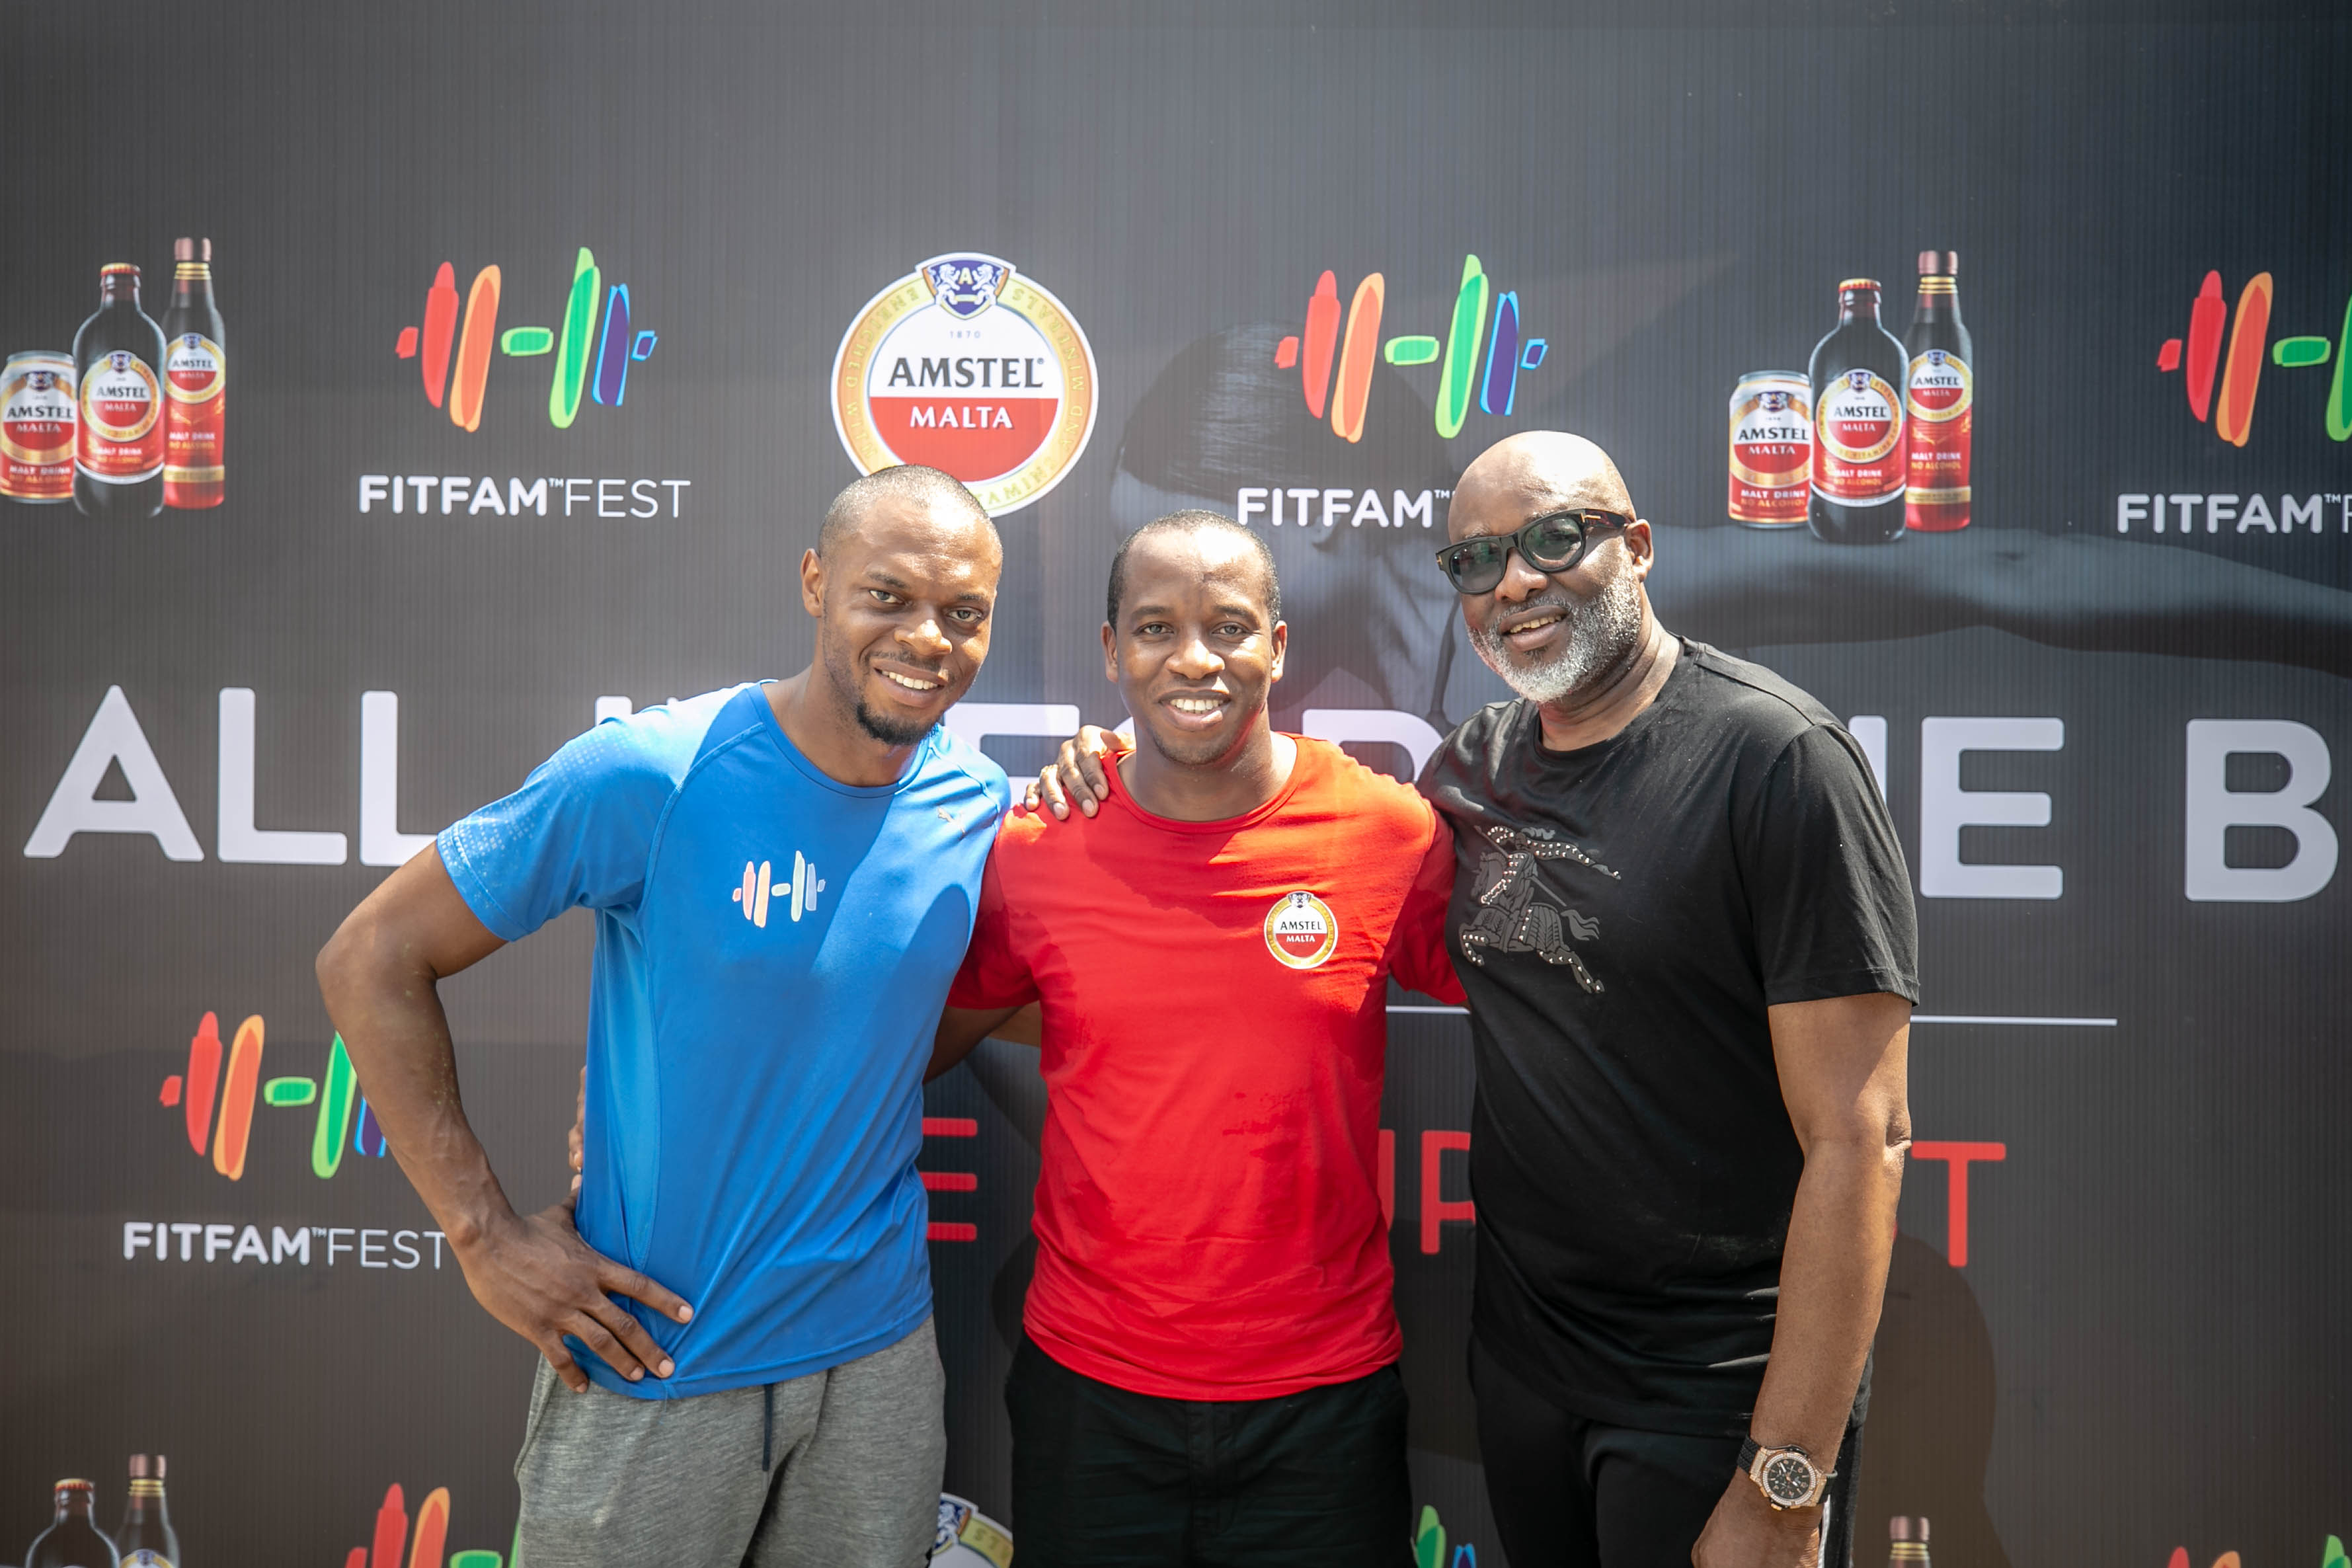 Amstel Malta Continues Drive For Healthier Nigeria With FitFam Fest 2018